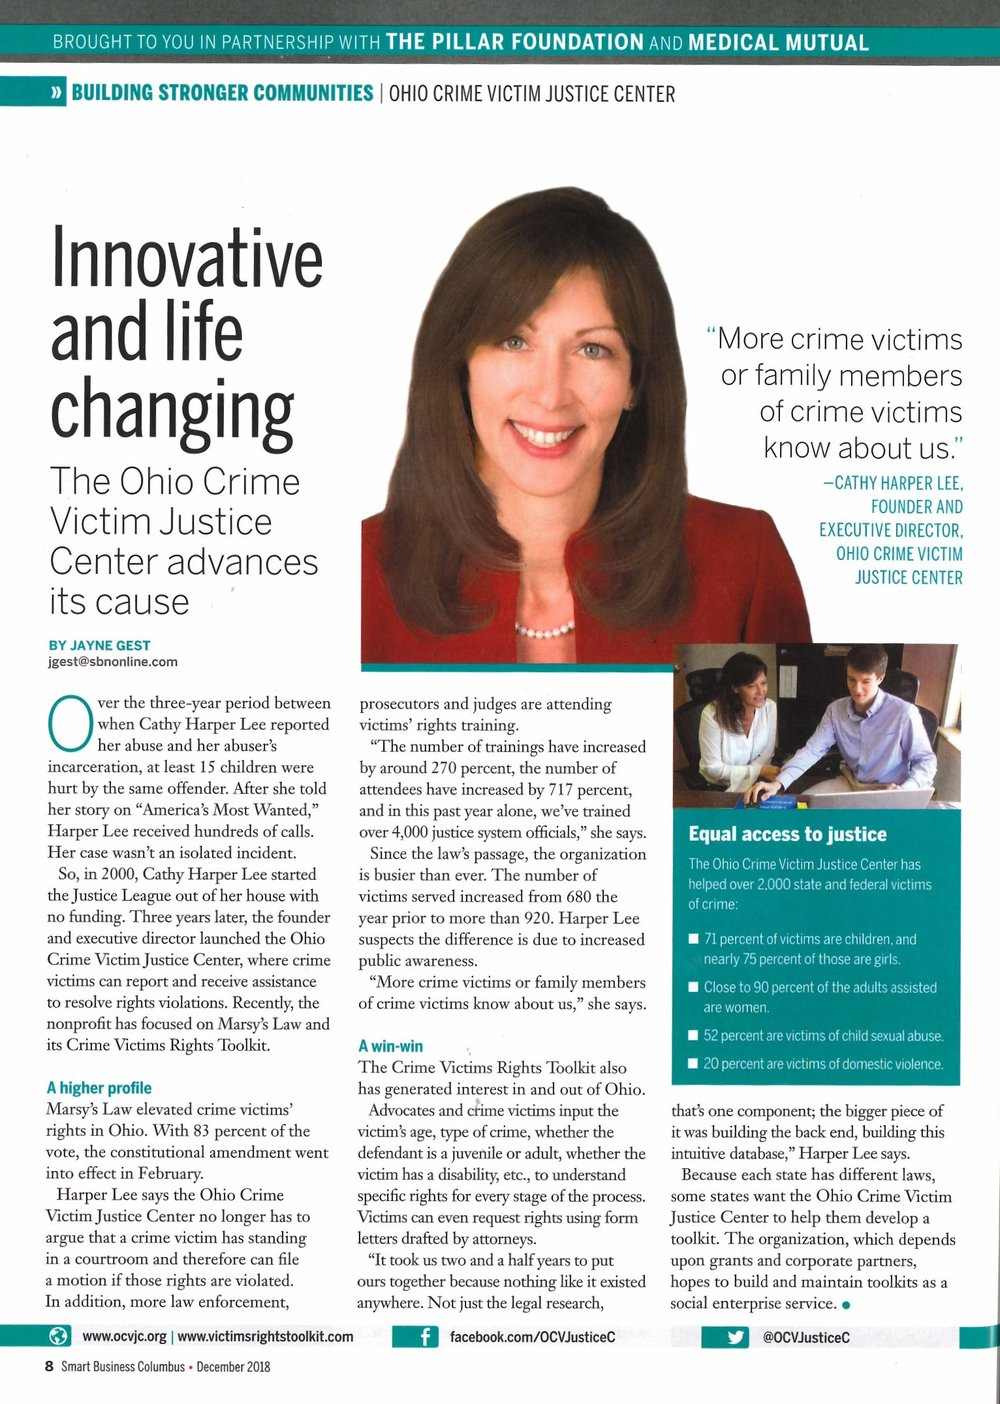 Advancing a Cause - 2018 - Ohio Crime Victim Justice Center was featured in The Pillar Foundation and Medical Mutual magazine